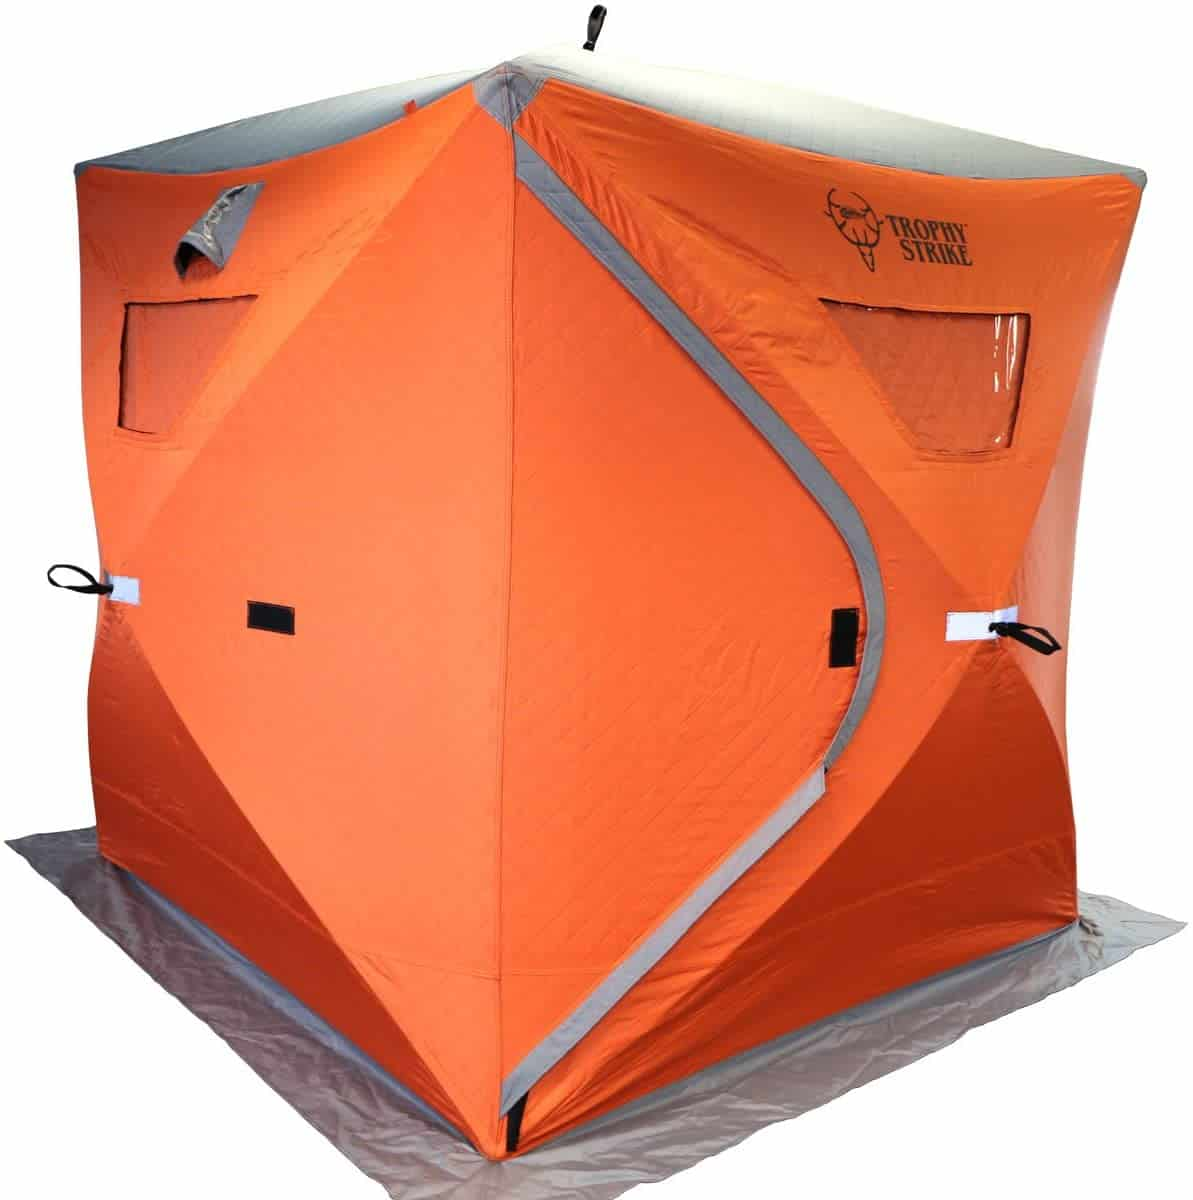 Thermal Ice Fishing Shelter by Trophy Strike